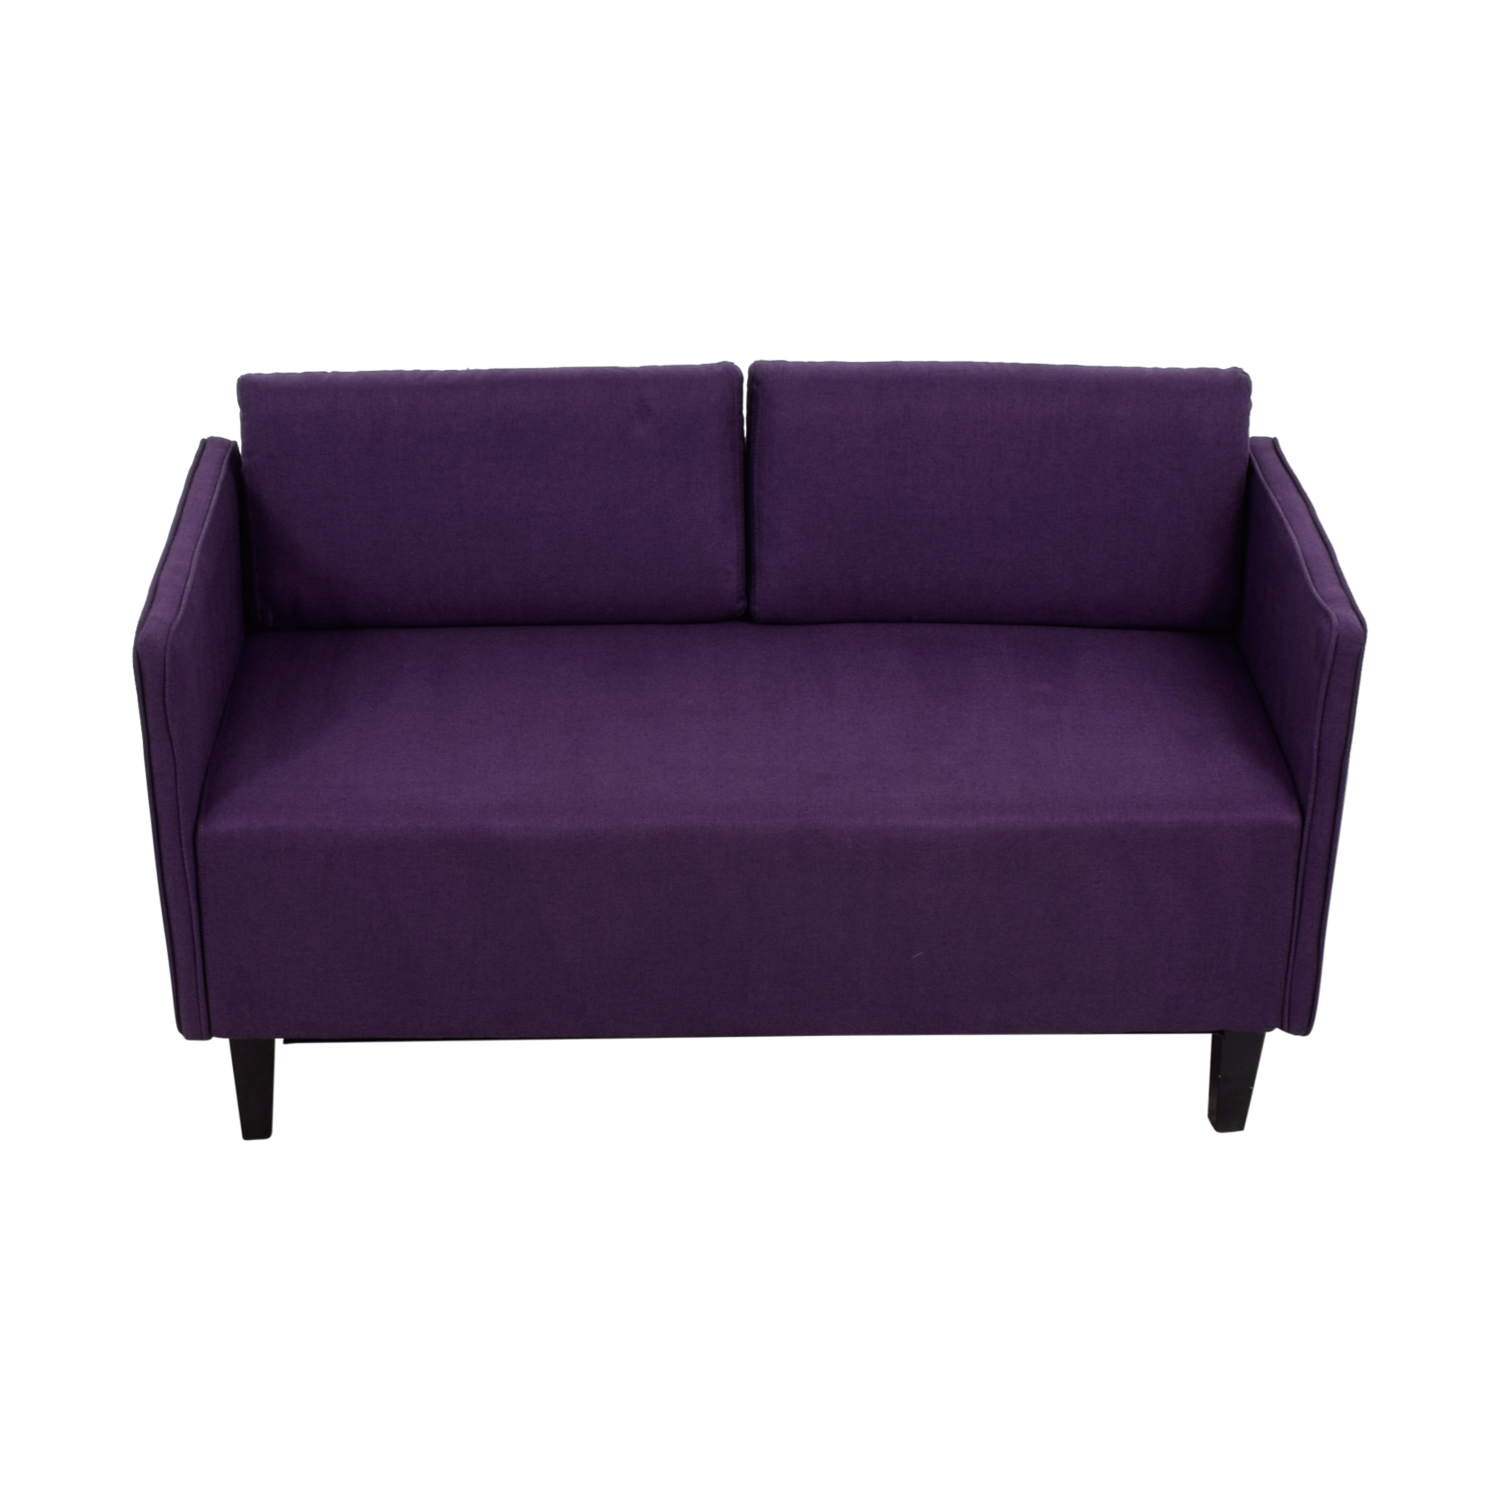 Ebern Designs Ebern Designs Dempsey Purple Herringbone Loveseat purple